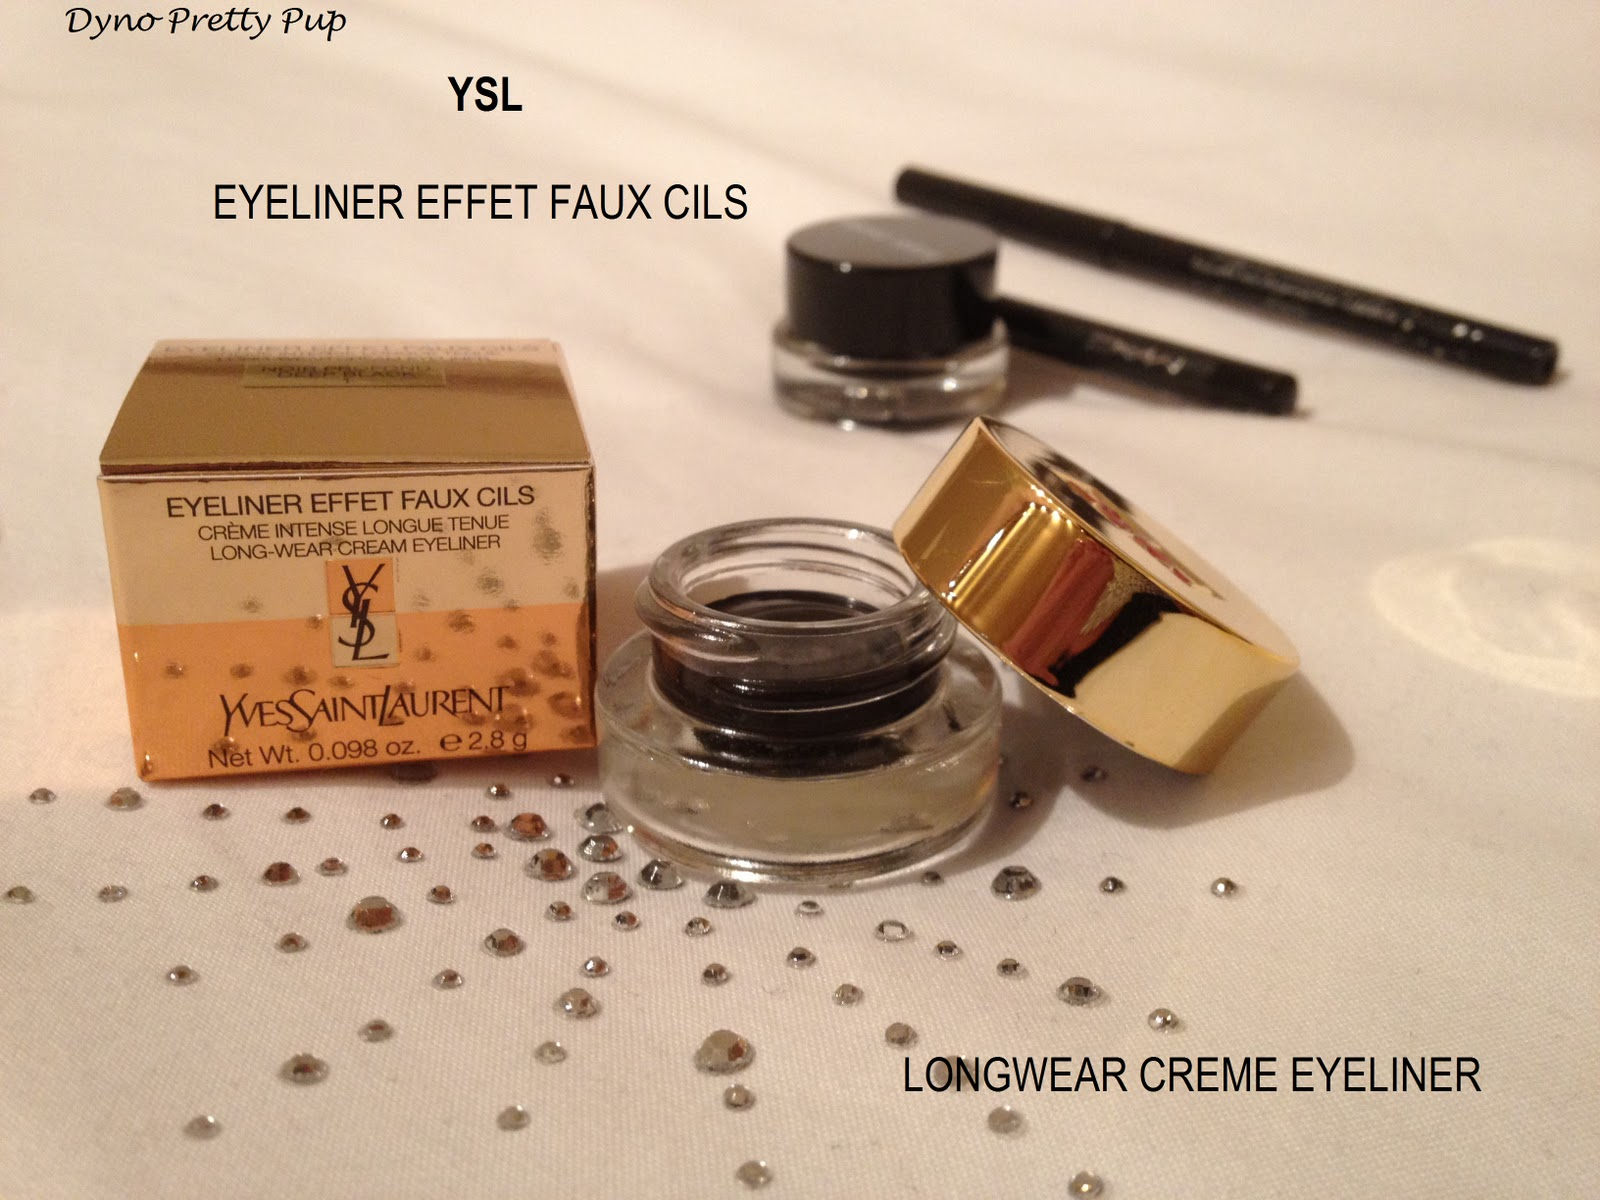 yves st laurent duffle bag - Dyno Pretty Pup Beauty Diary: Yves Saint Laurent YSL 'Eyeliner ...